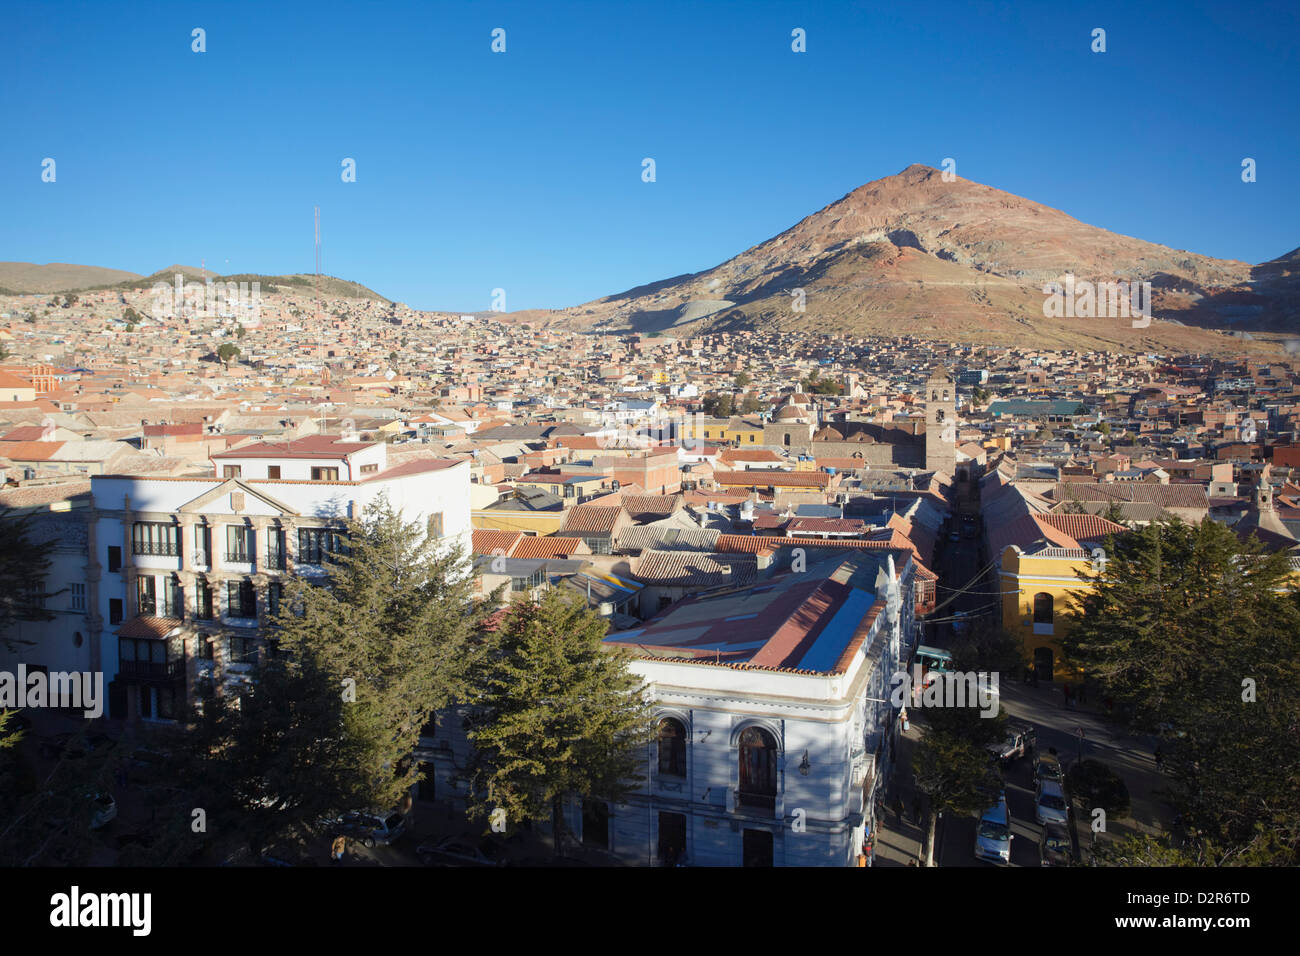 View of Potosi, UNESCO World Heritage Site, Bolivia, South America - Stock Image